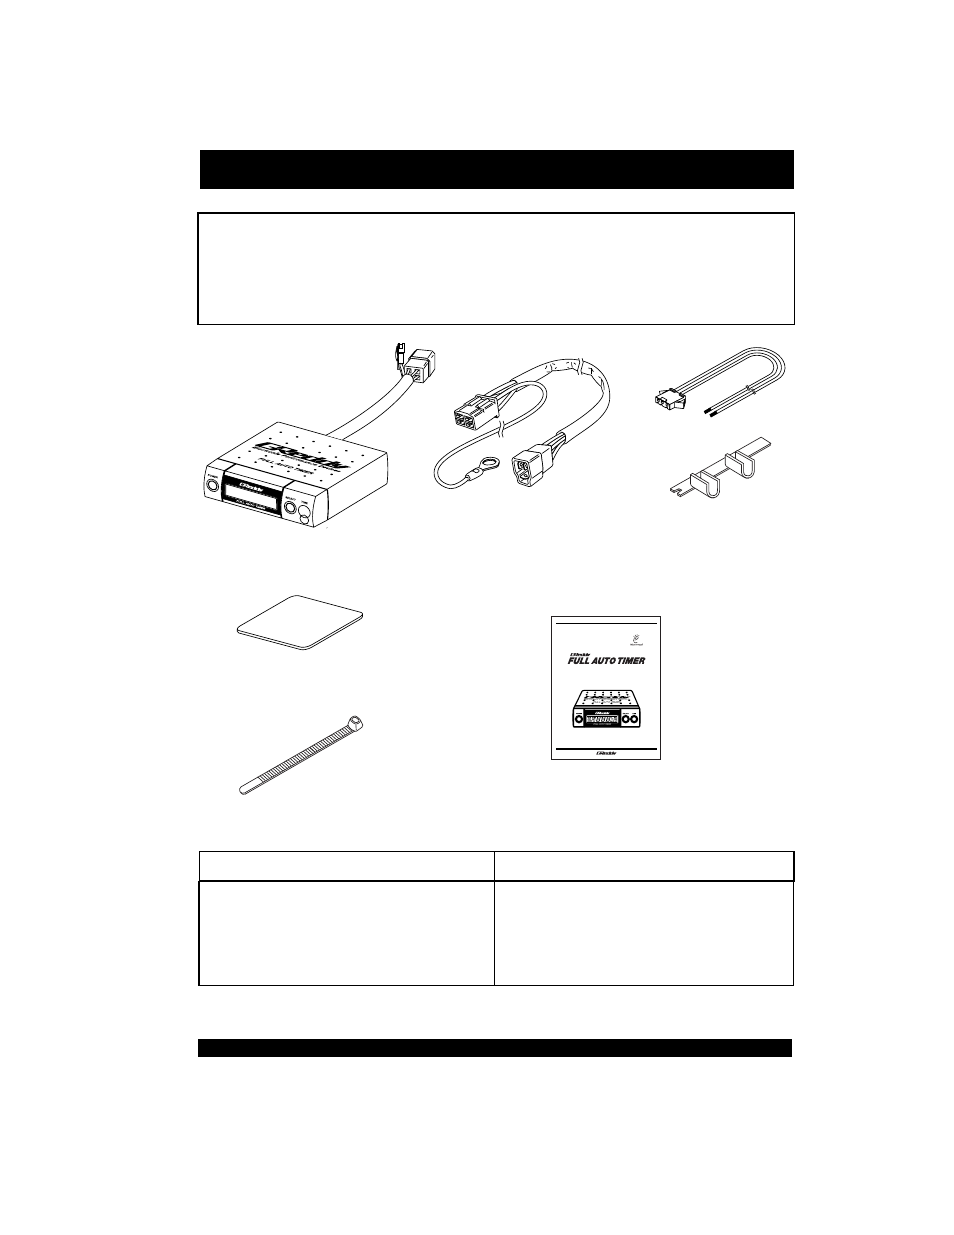 Parts list, Important | GReddy FATT Full Auto Turbo Timer User Manual |  Page 2 / 28